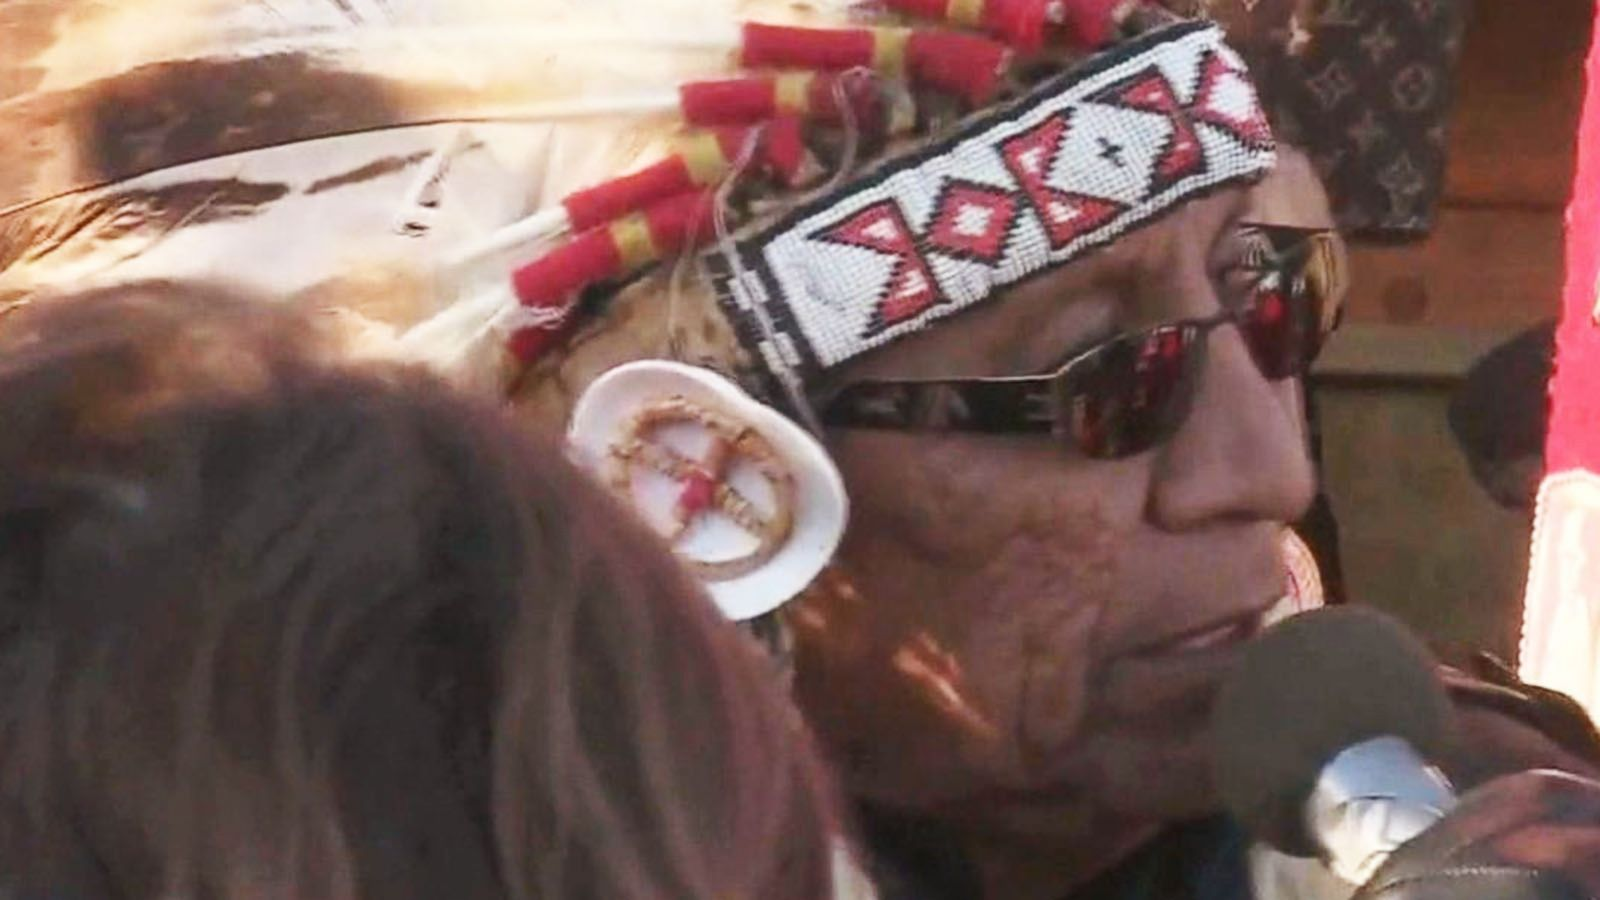 VIDEO: Will Dakota Access Pipeline Be Re-Routed?